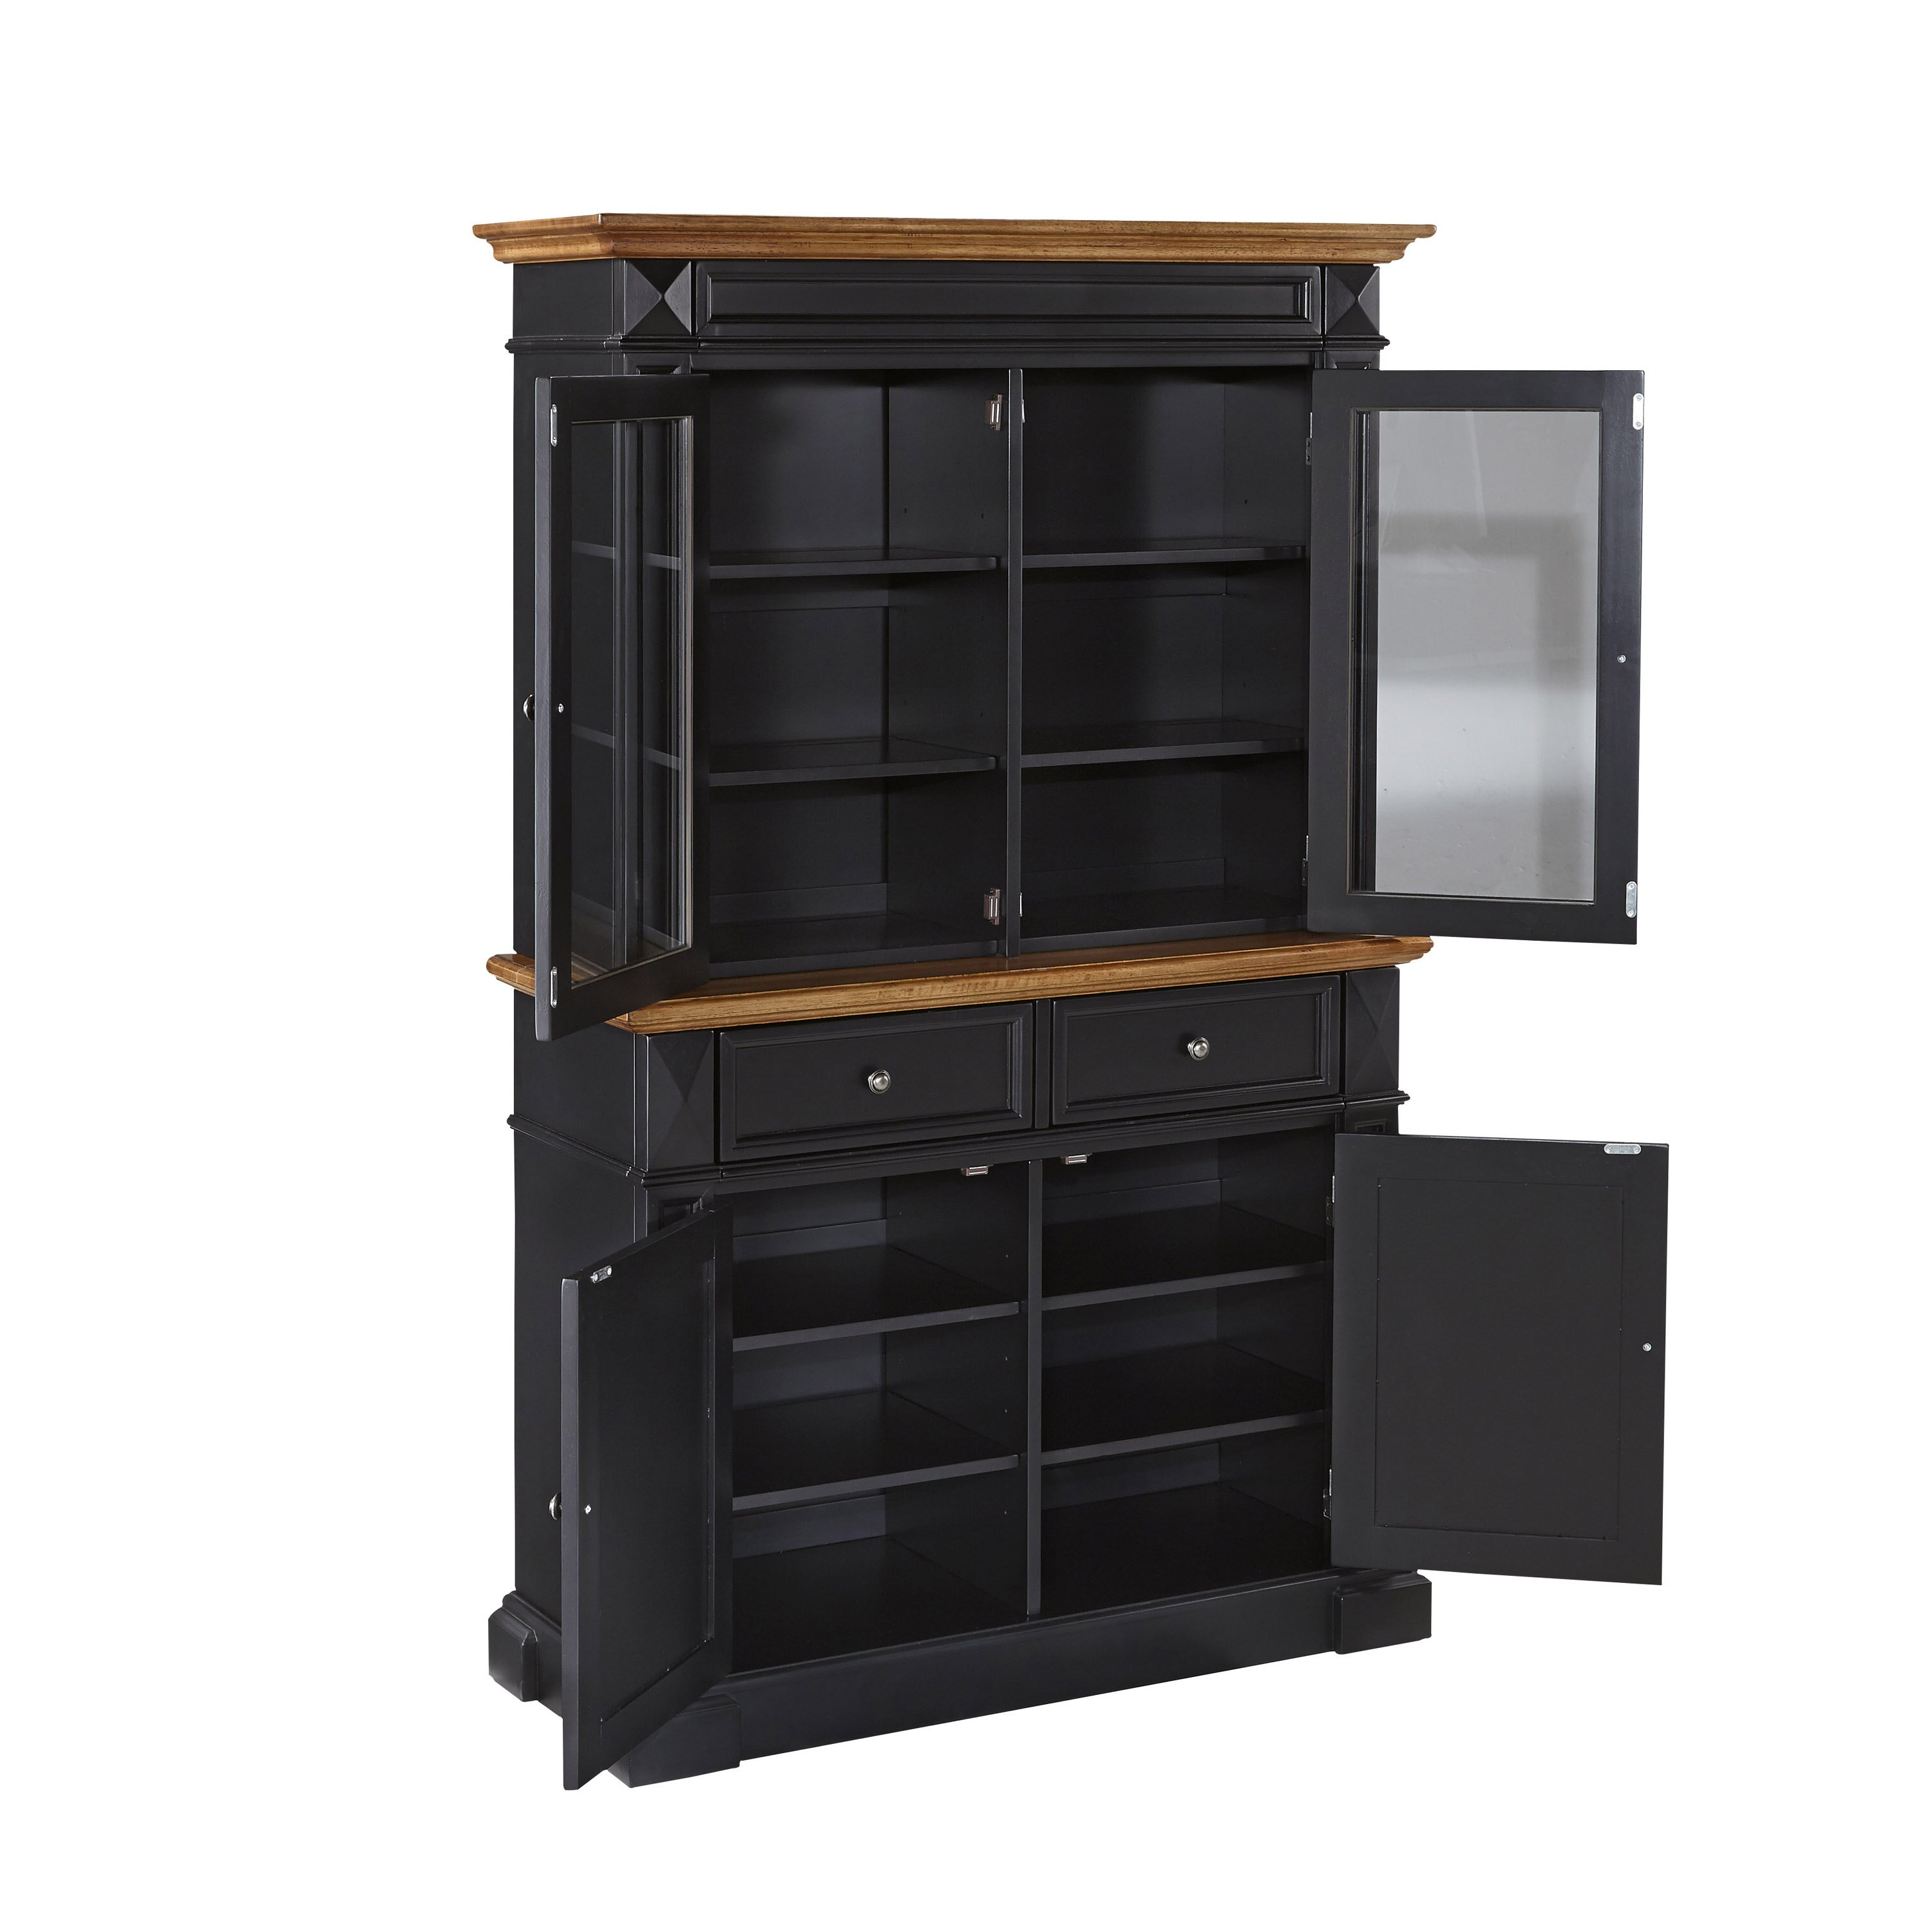 Home styles americana china cabinet reviews wayfair for Wayfair kitchen cabinets